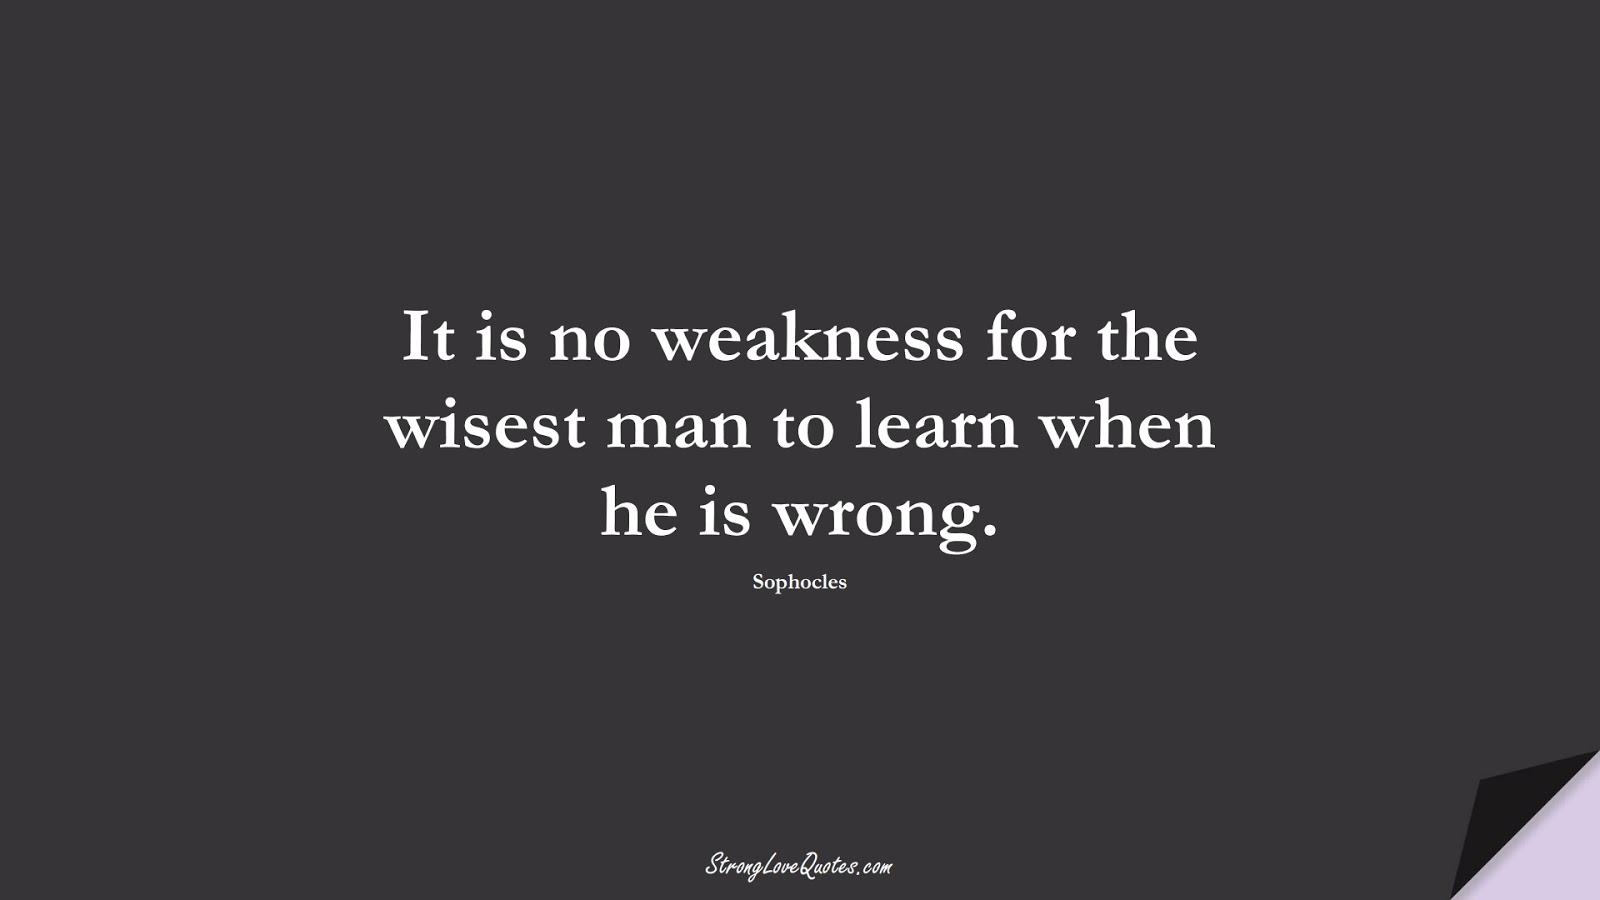 It is no weakness for the wisest man to learn when he is wrong. (Sophocles);  #LearningQuotes